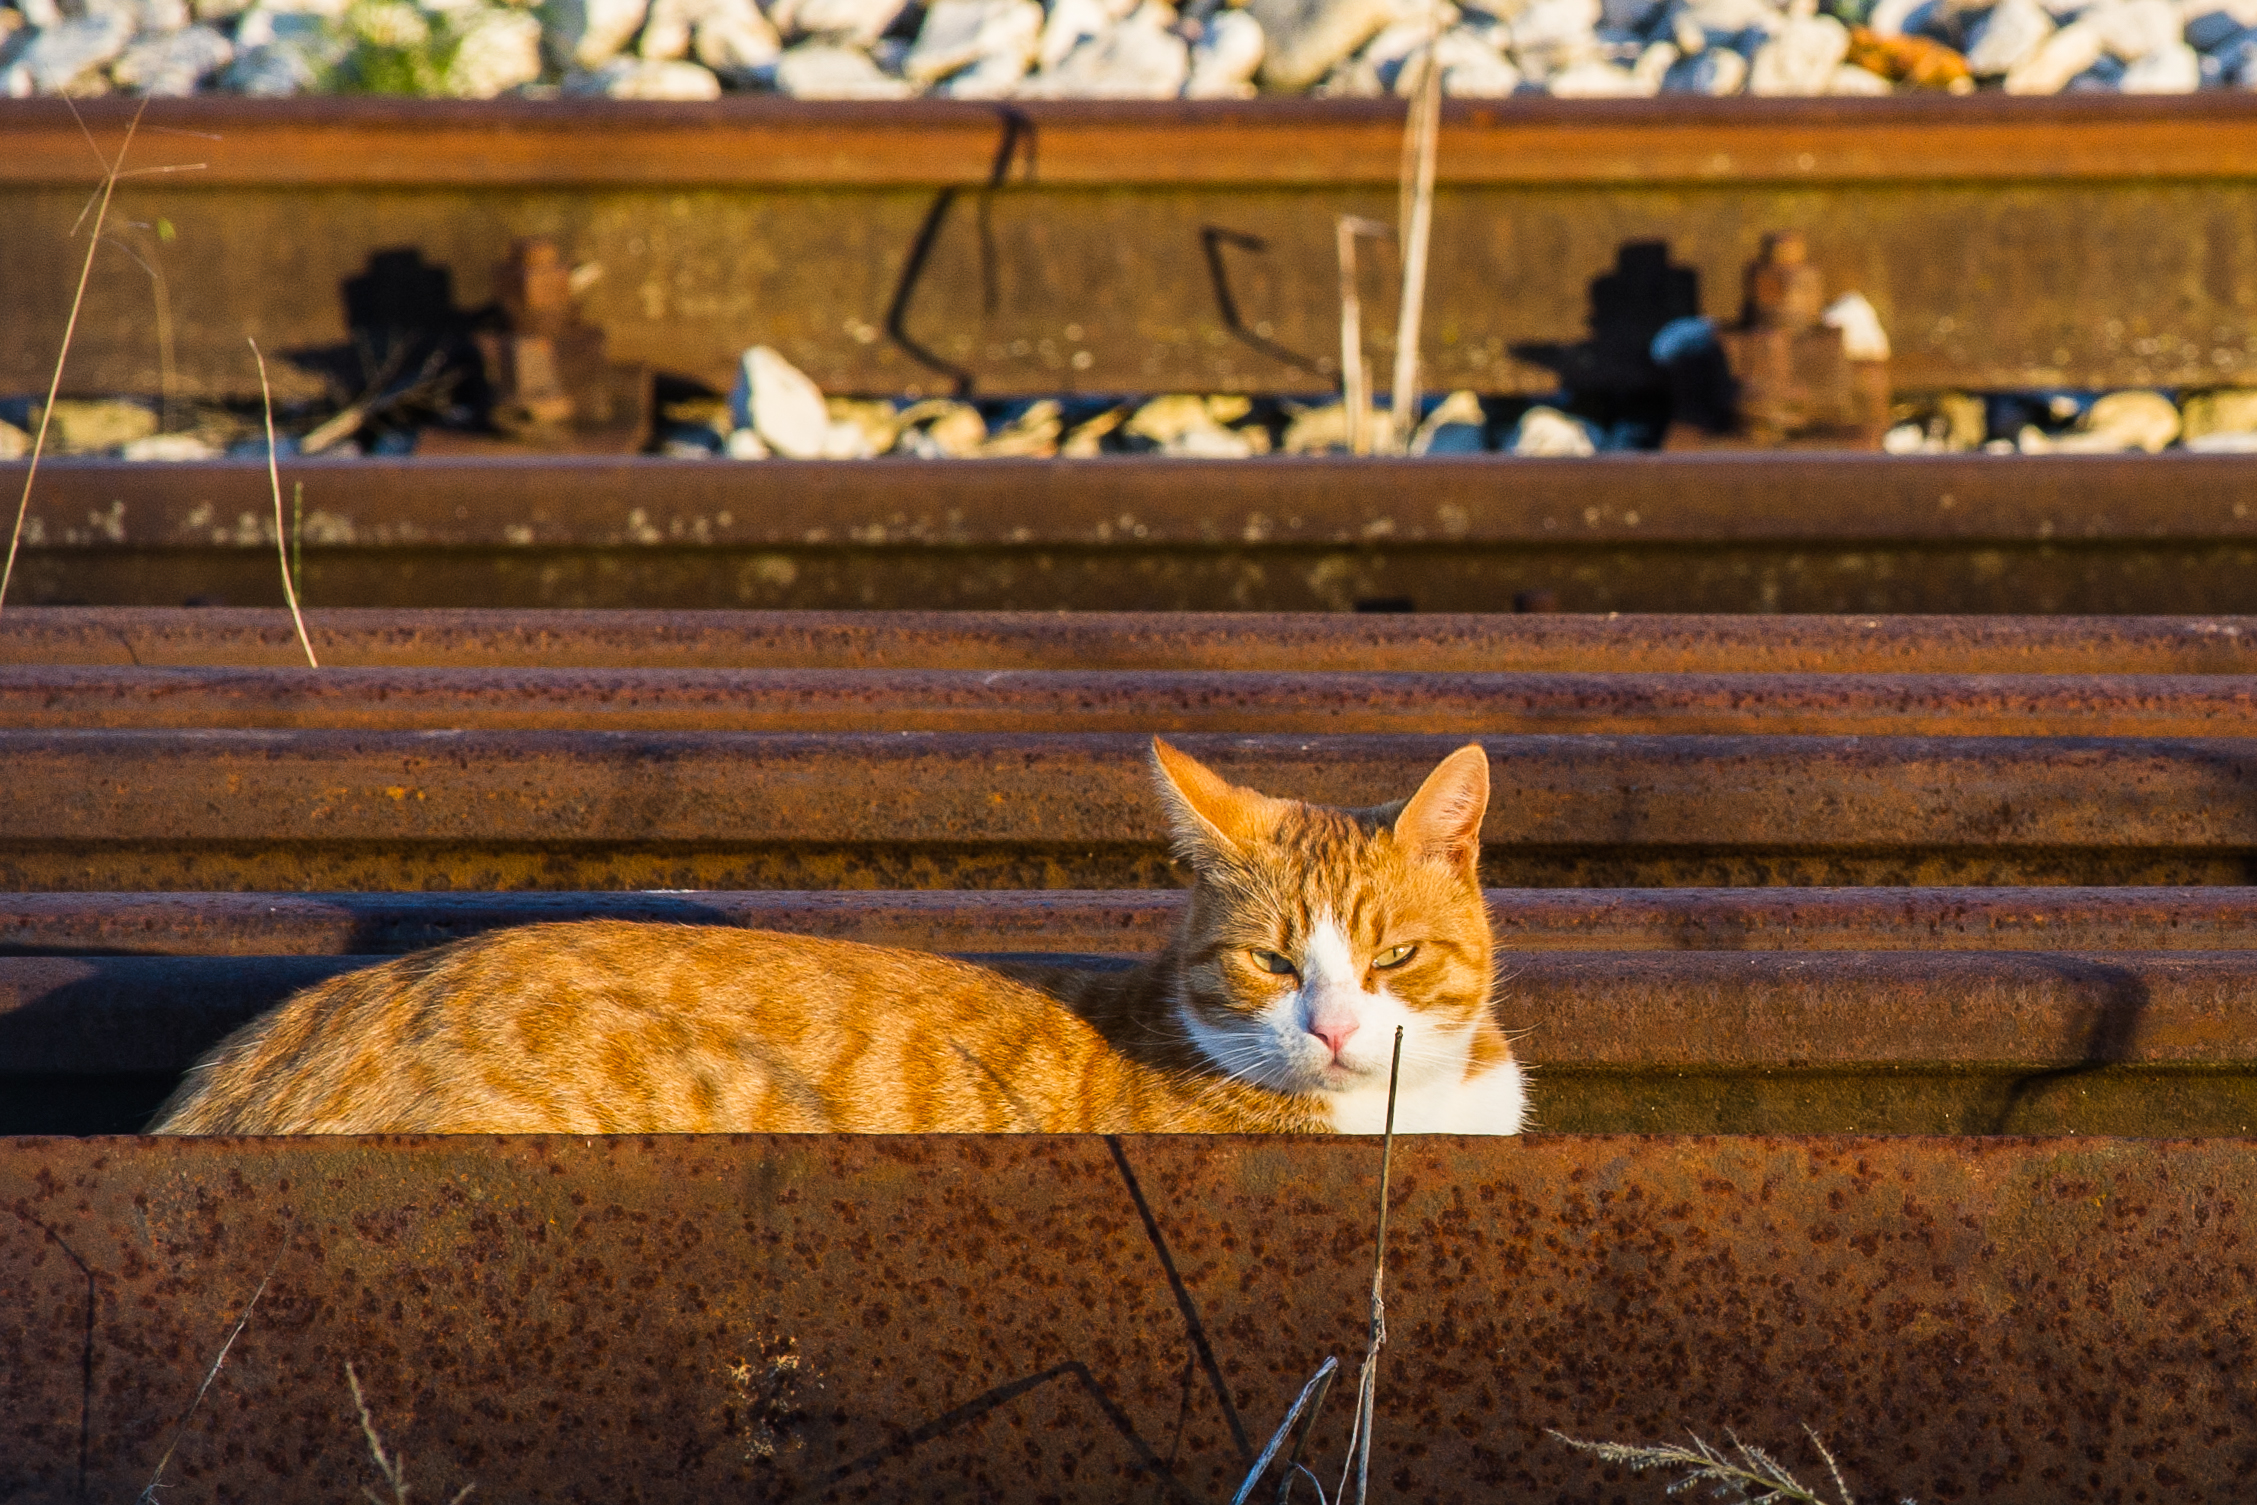 The cat with the rails...